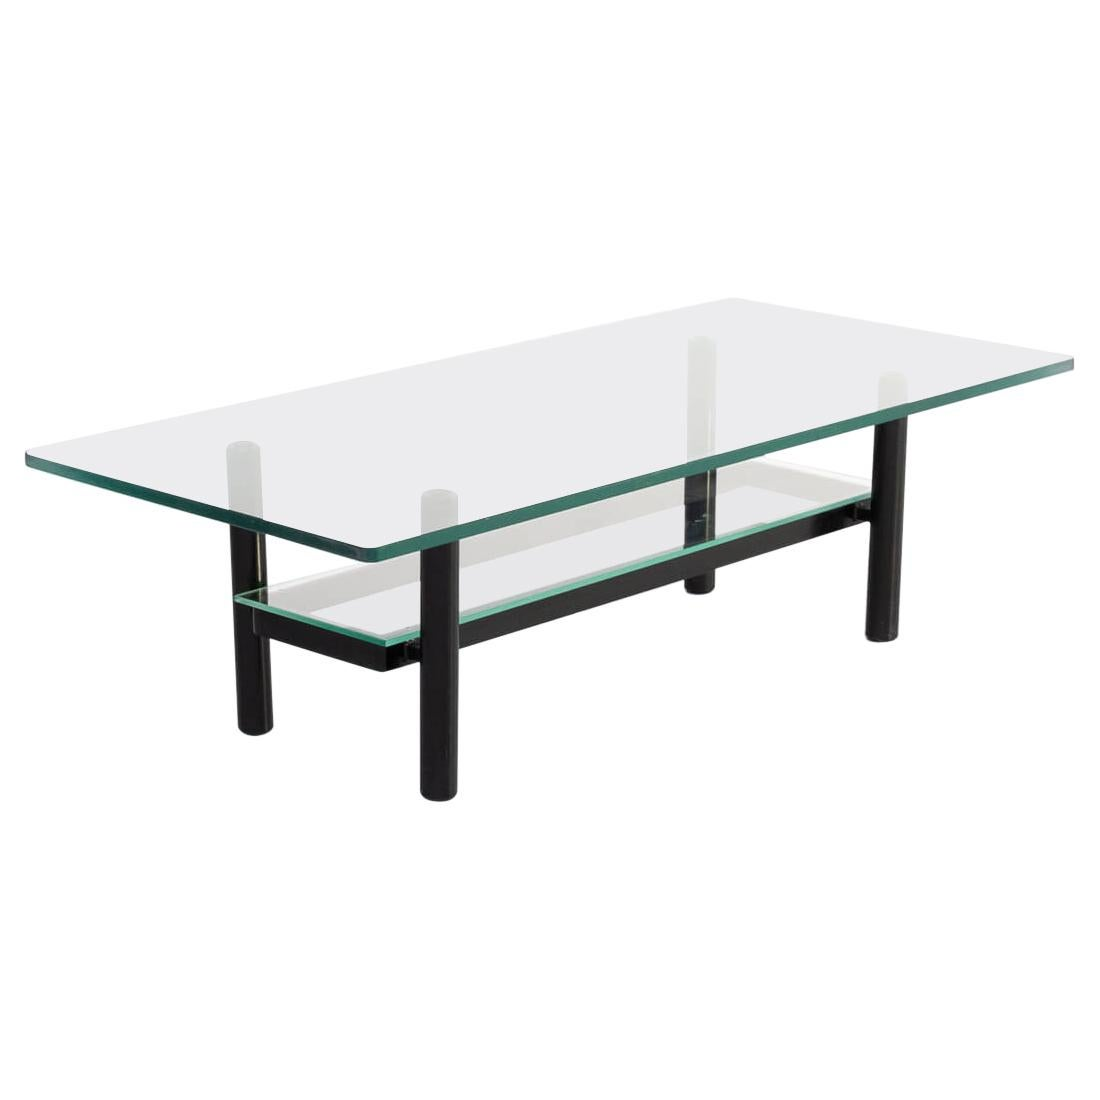 1980s Solid Metal and Glass Coffee Table